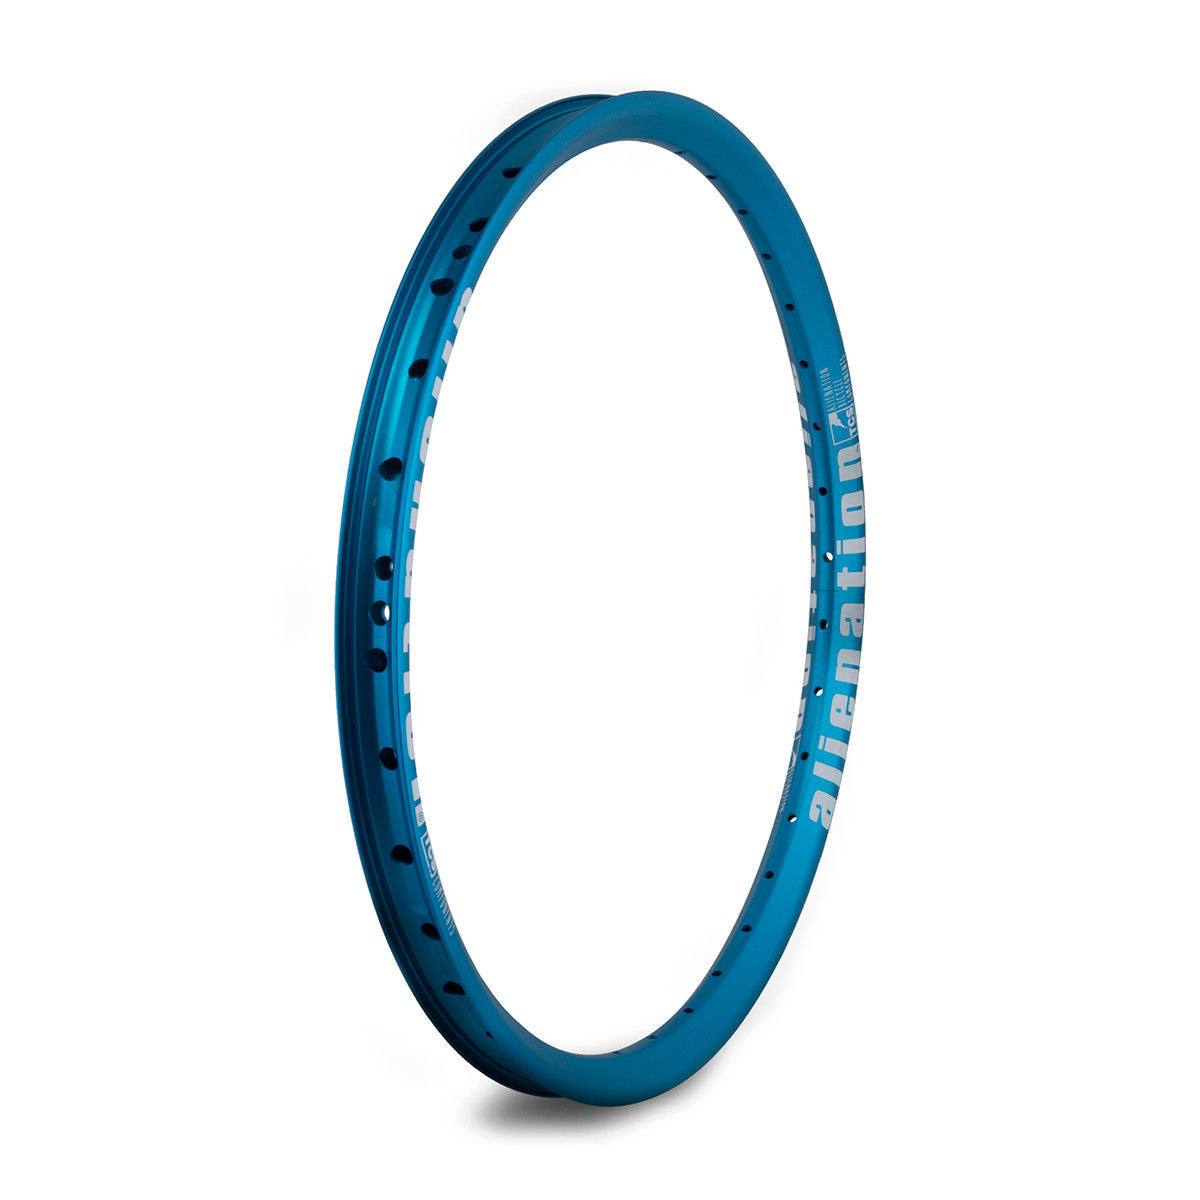 "20"" (406mm) Alienation Mischief G69 TSC Front BMX Rim - Aluminum - Double Wall - 36h - Teal Blue"